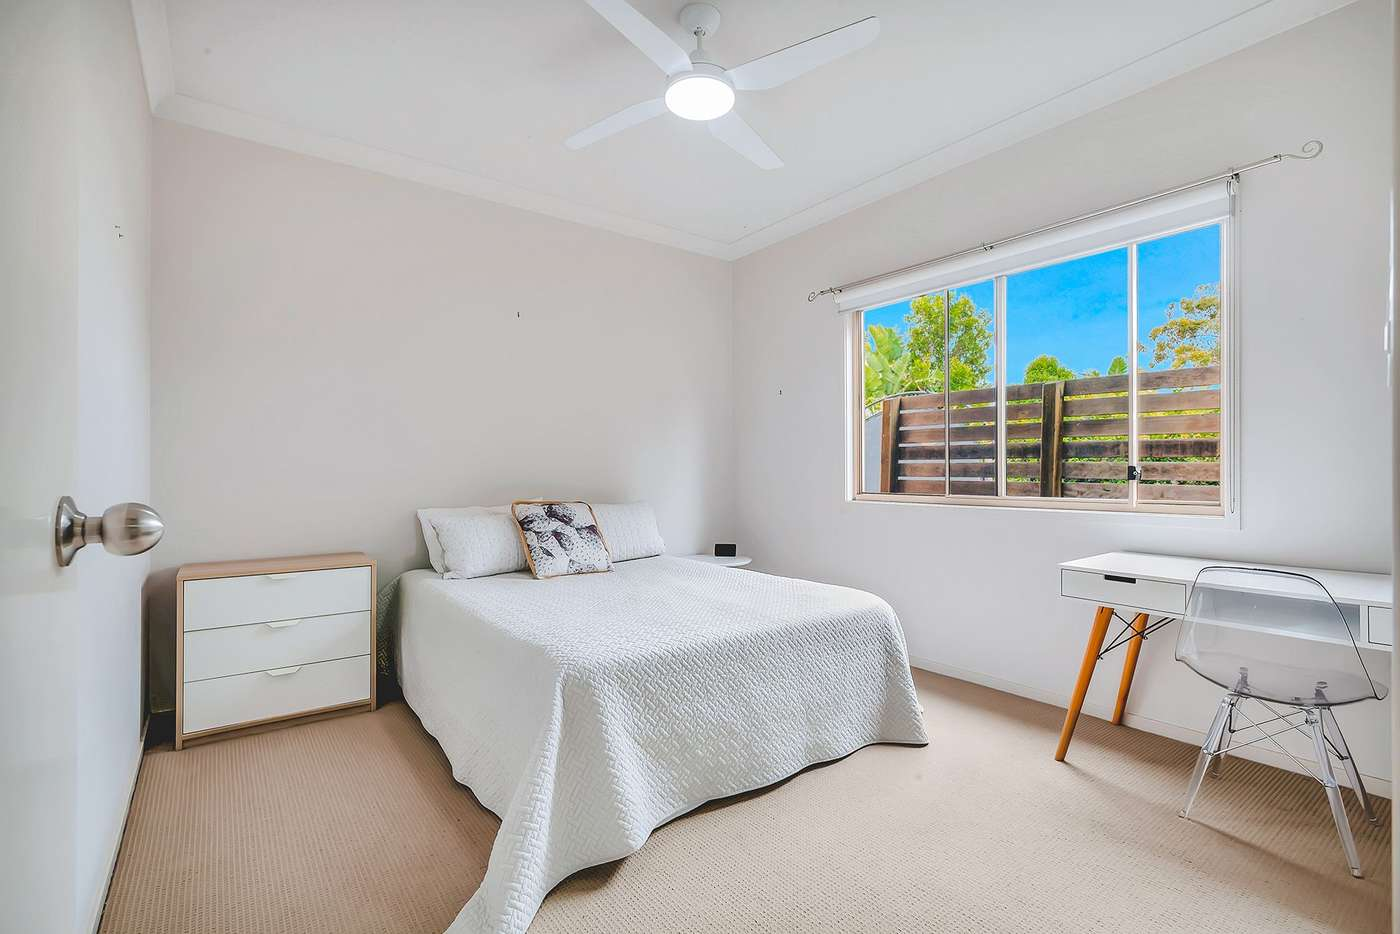 Sixth view of Homely house listing, 6 Blackall Street, Coomera QLD 4209